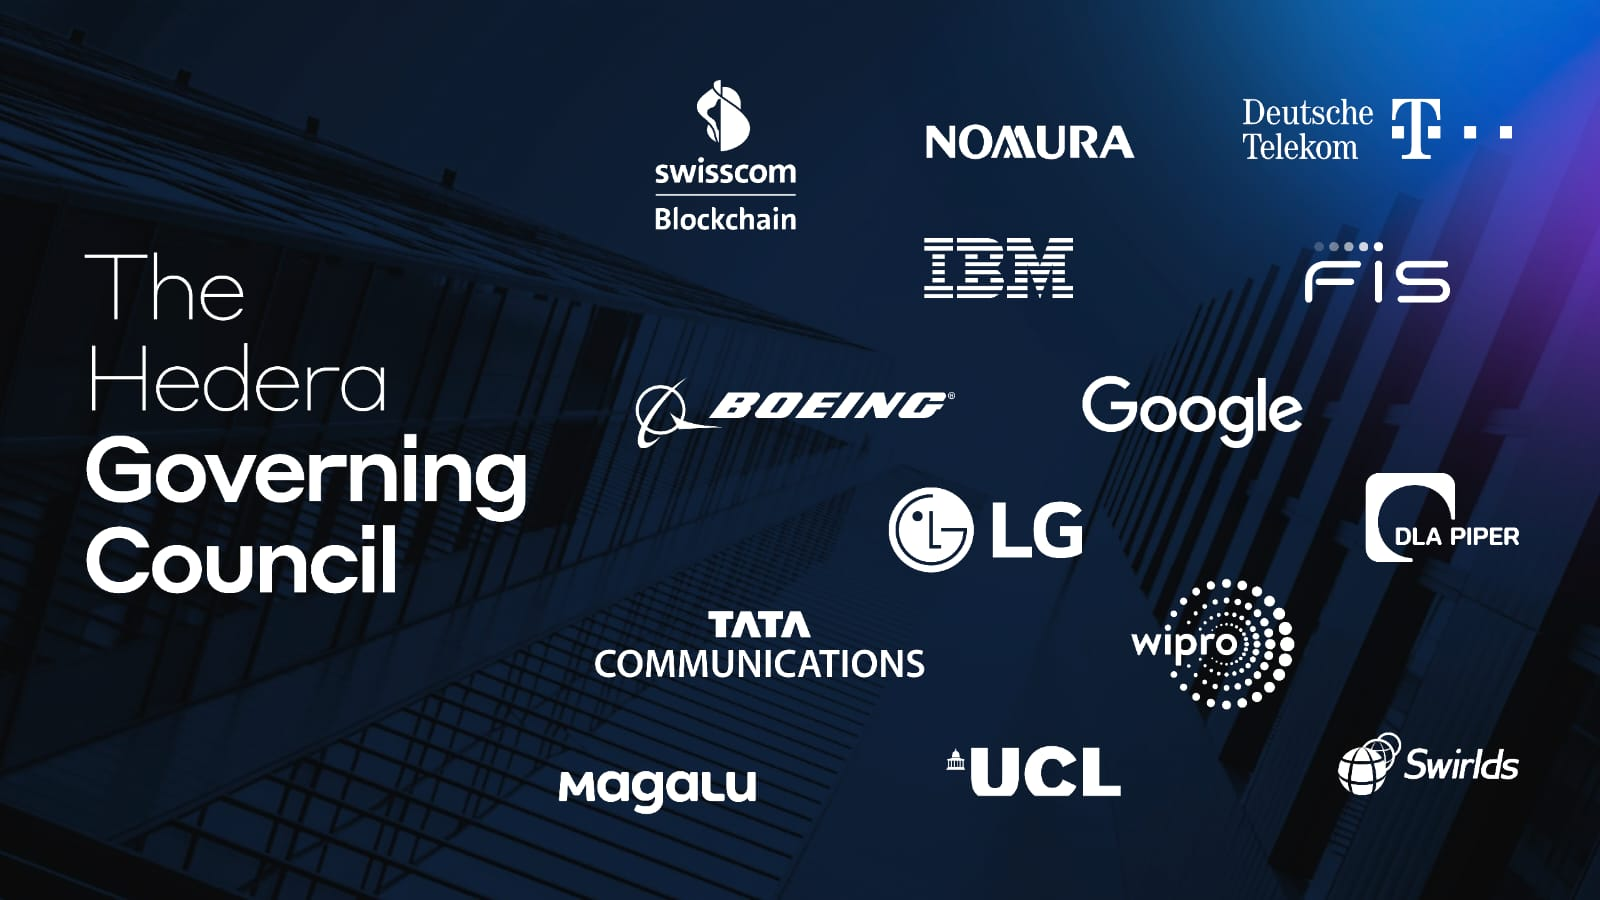 An image showing the logos of companies who are members of the Hedera Governing Council